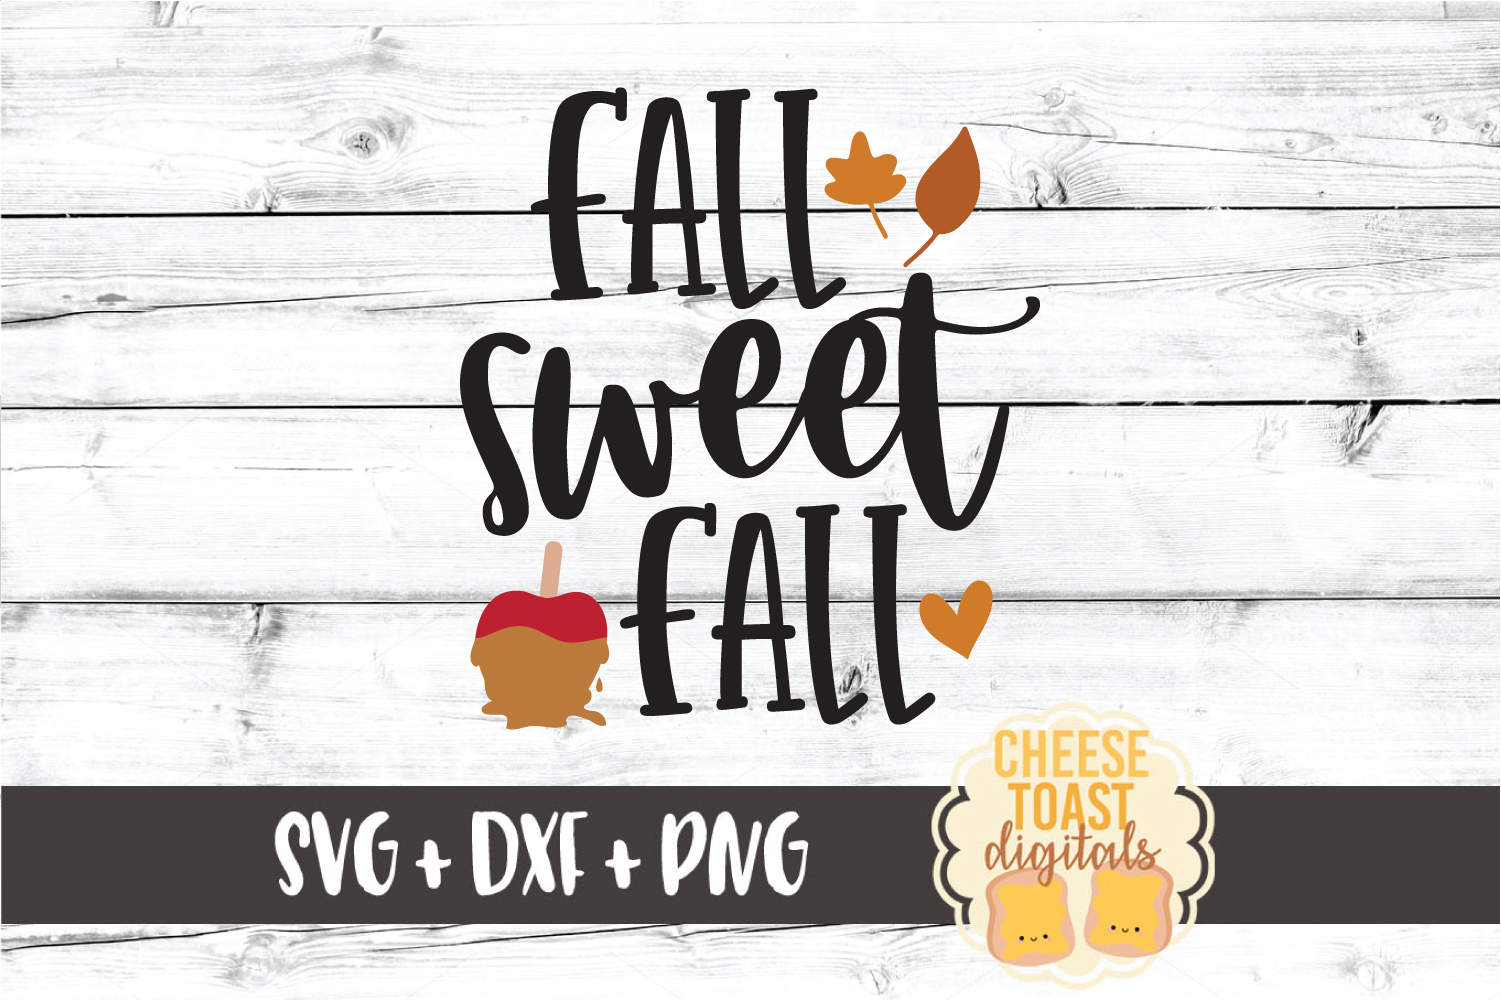 Fall Sweet Fall - Autumn Sign SVG PNG DXF Cut Files example image 2